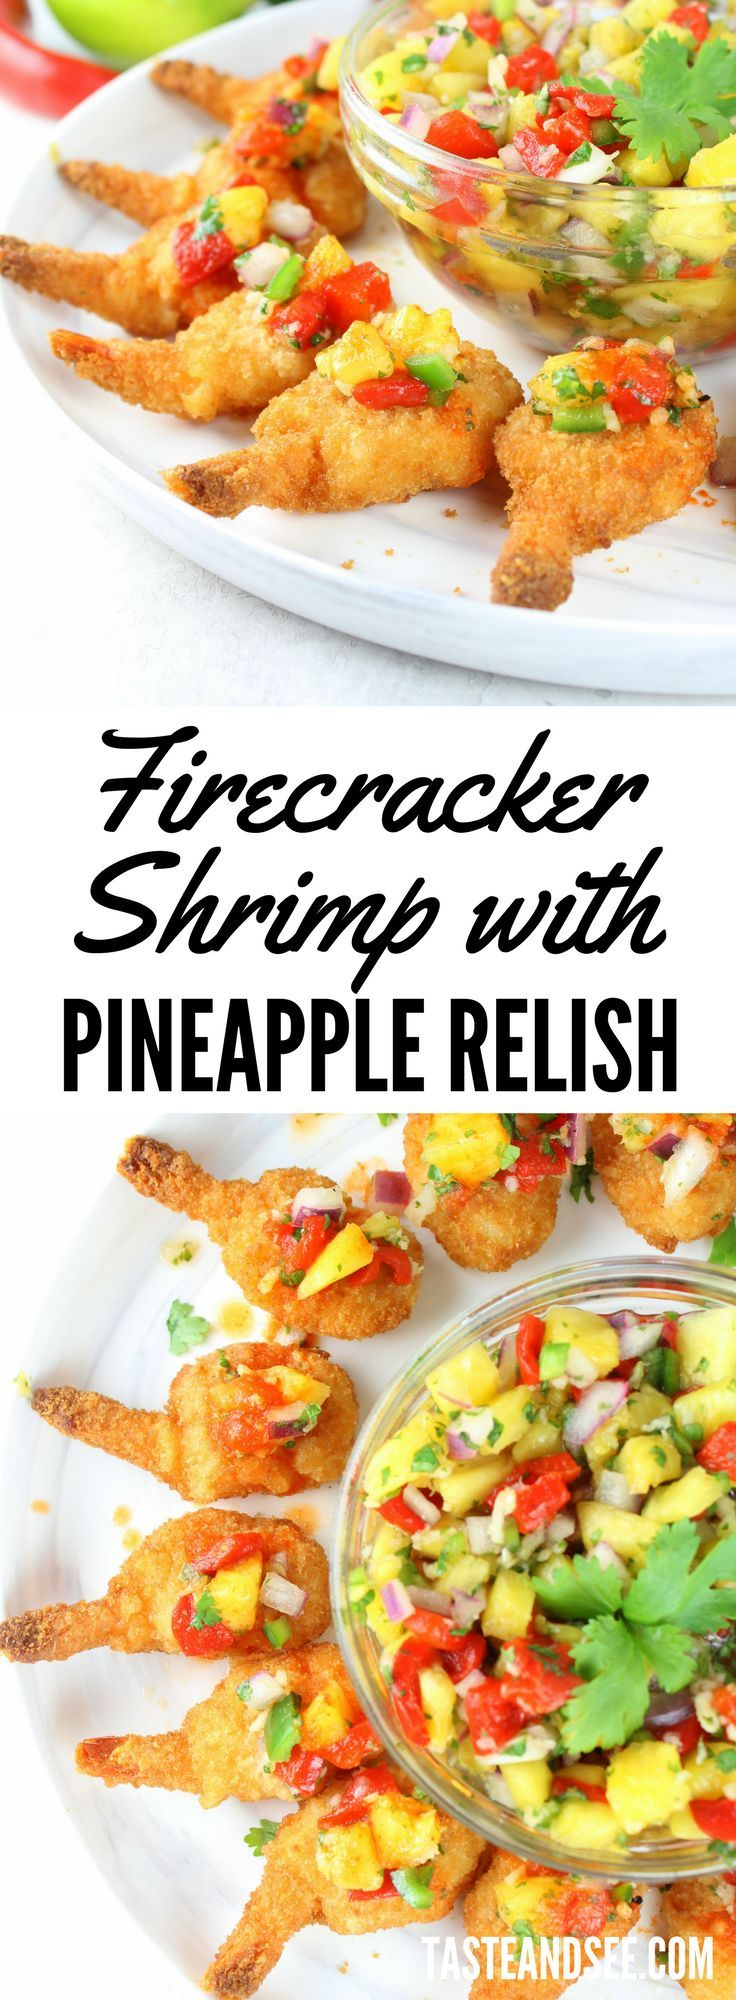 Crispy Firecracker #Shrimp with Pineapple Relish - An easy, stress-free #appetizer your guests will devour!  Fresh and delicious with just a little kick.   https://tasteandsee.com